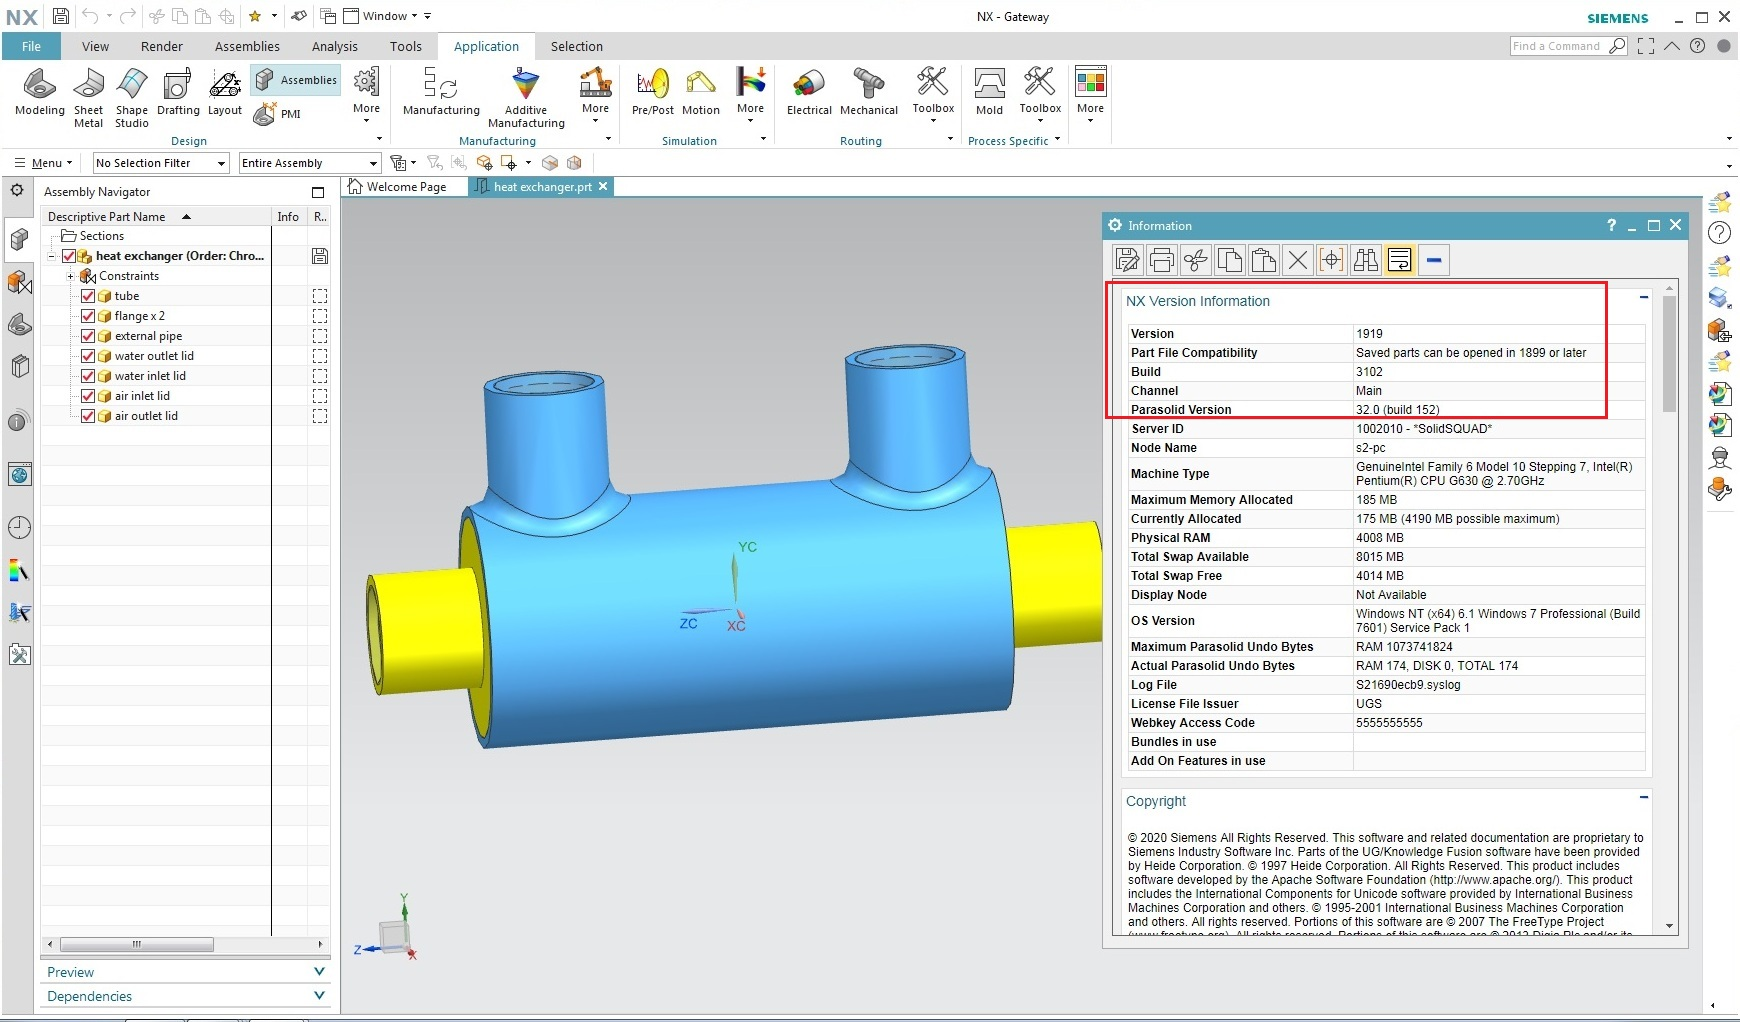 Working with Siemens NX 1919 Build 3102 (NX 1899 Series) full license